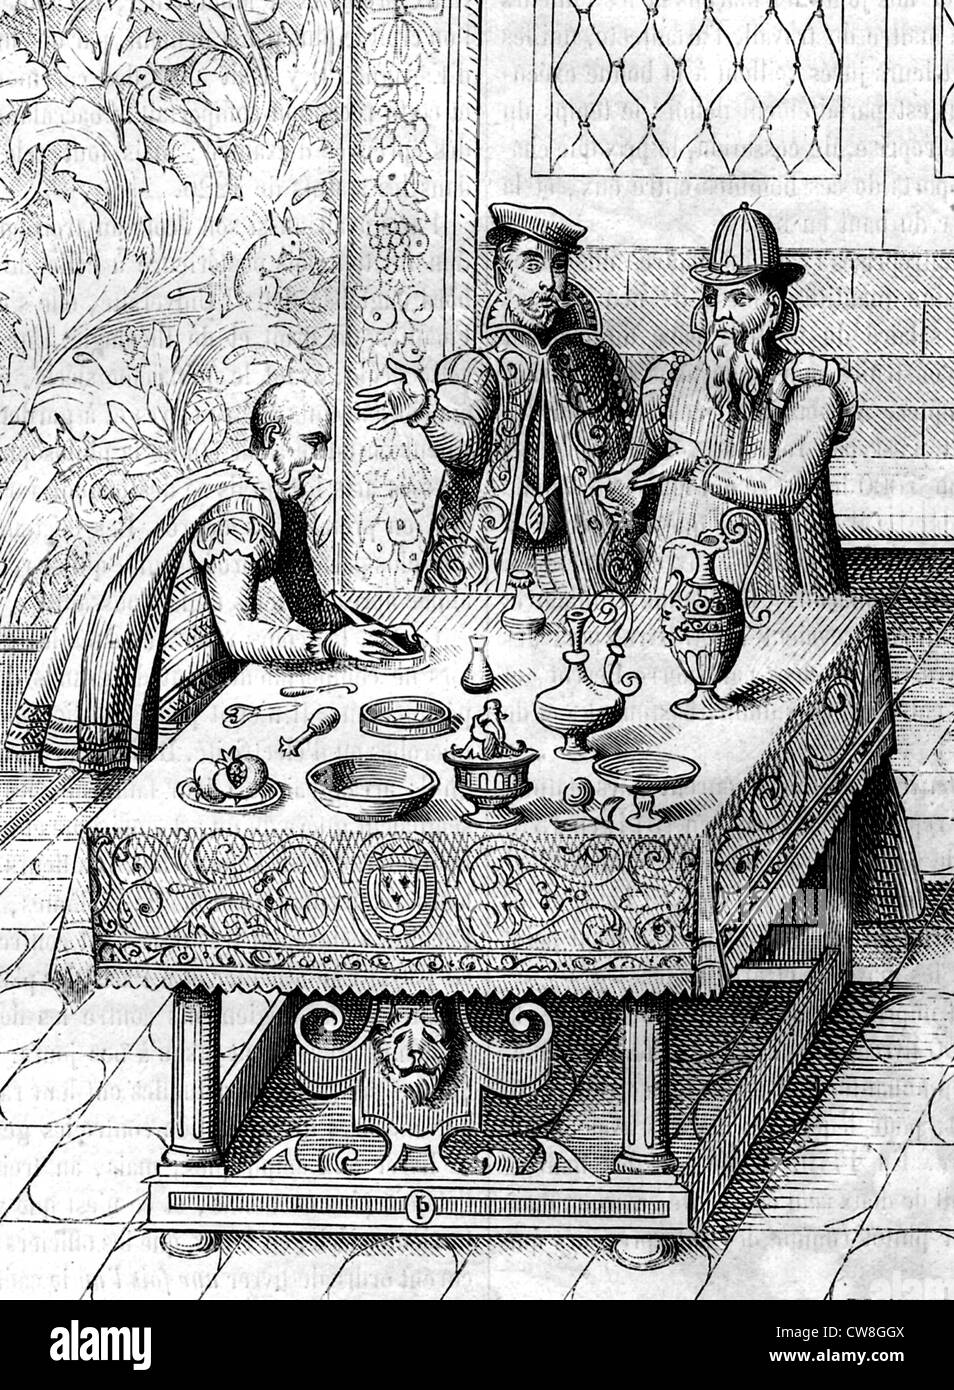 Physicians of the King of France, 15th century Stock Photo